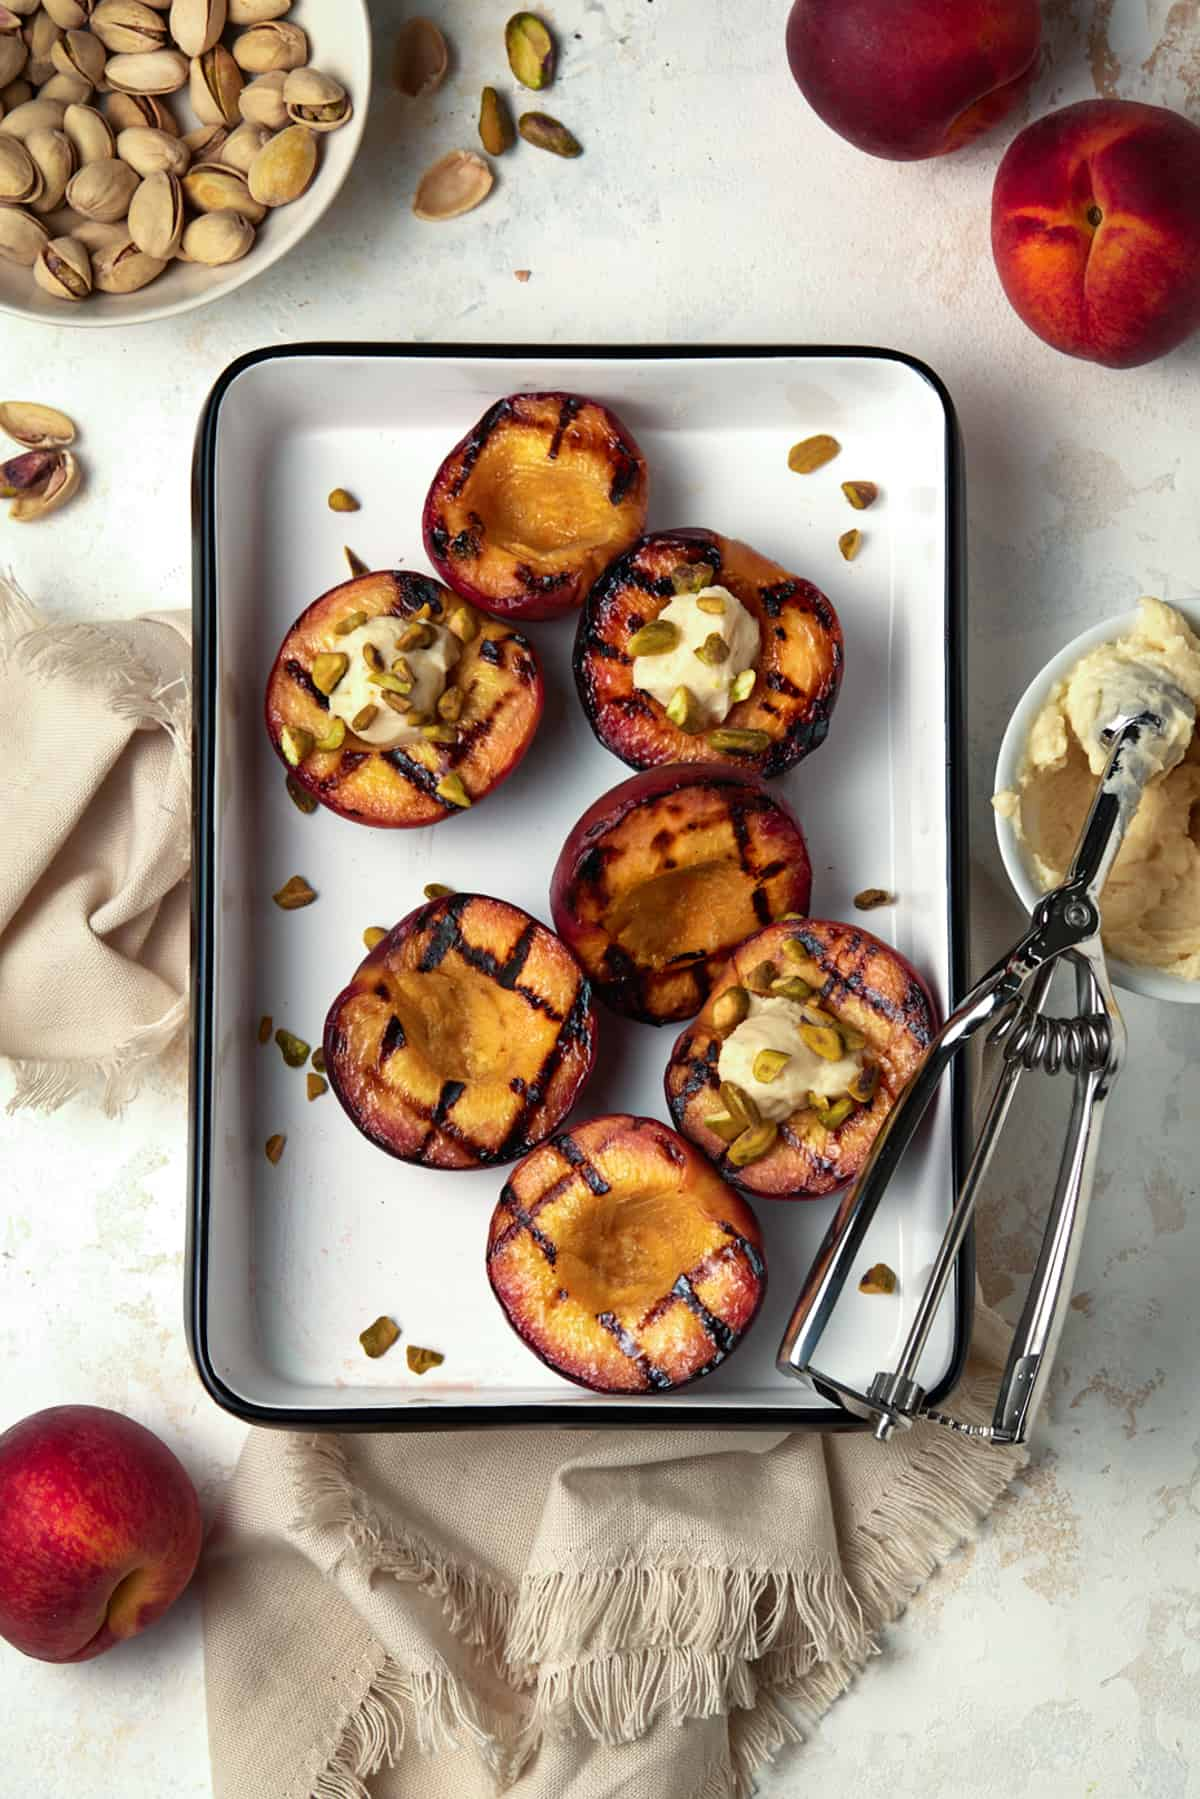 Grilled peach halves in a white enamel tray. Garnished with pistachios and mascarpone cheese.